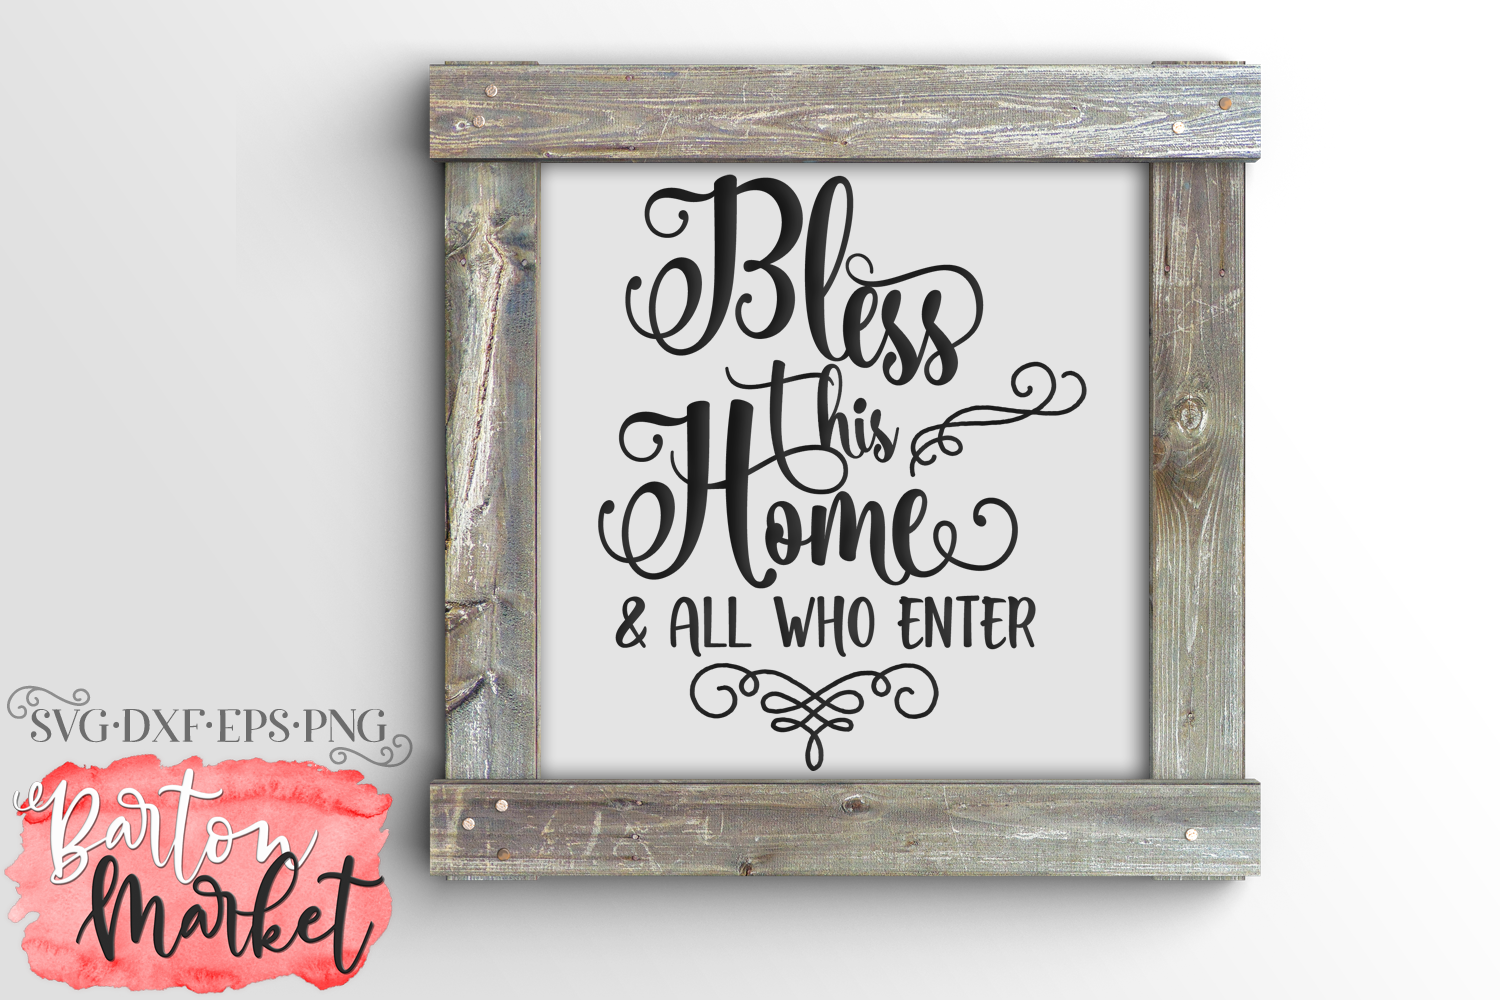 Download Free Bless This Home All Who Enter Svg Grafico Por Barton Market for Cricut Explore, Silhouette and other cutting machines.